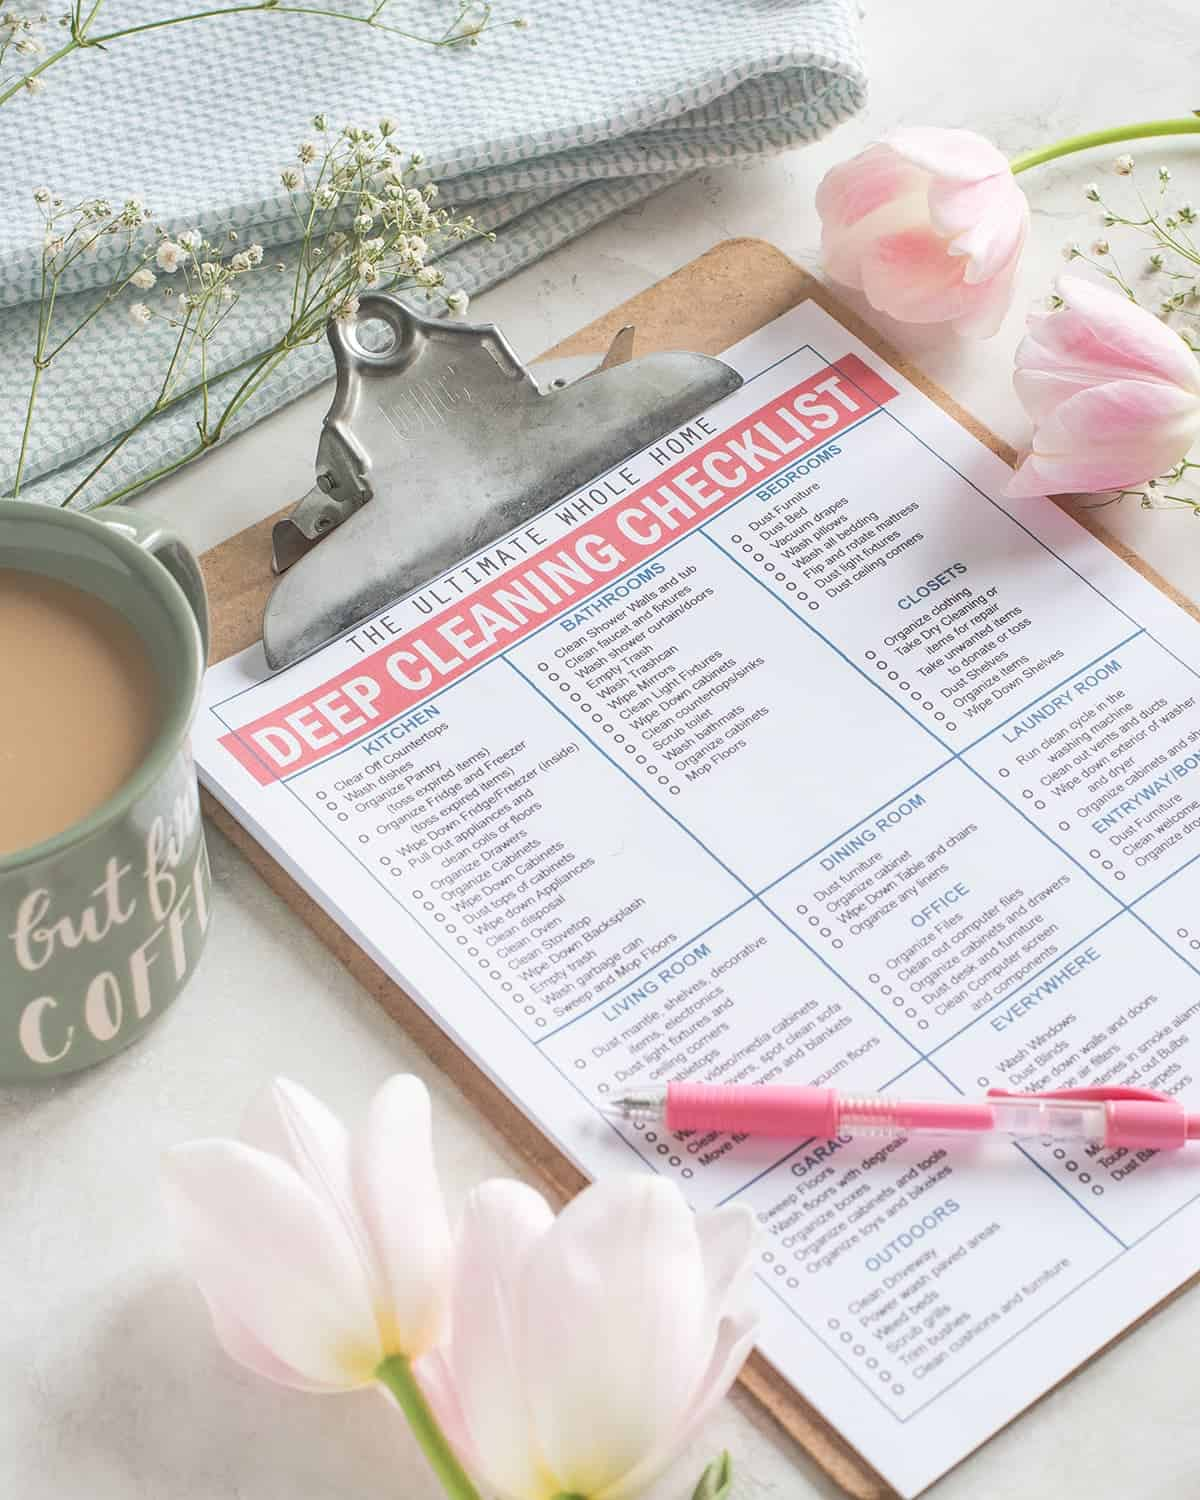 Whole Home Cleaning Printable Checklist on clipboard with pink pen. Norwex cloth, baby's breath, pink tulip and coffee cup in background.